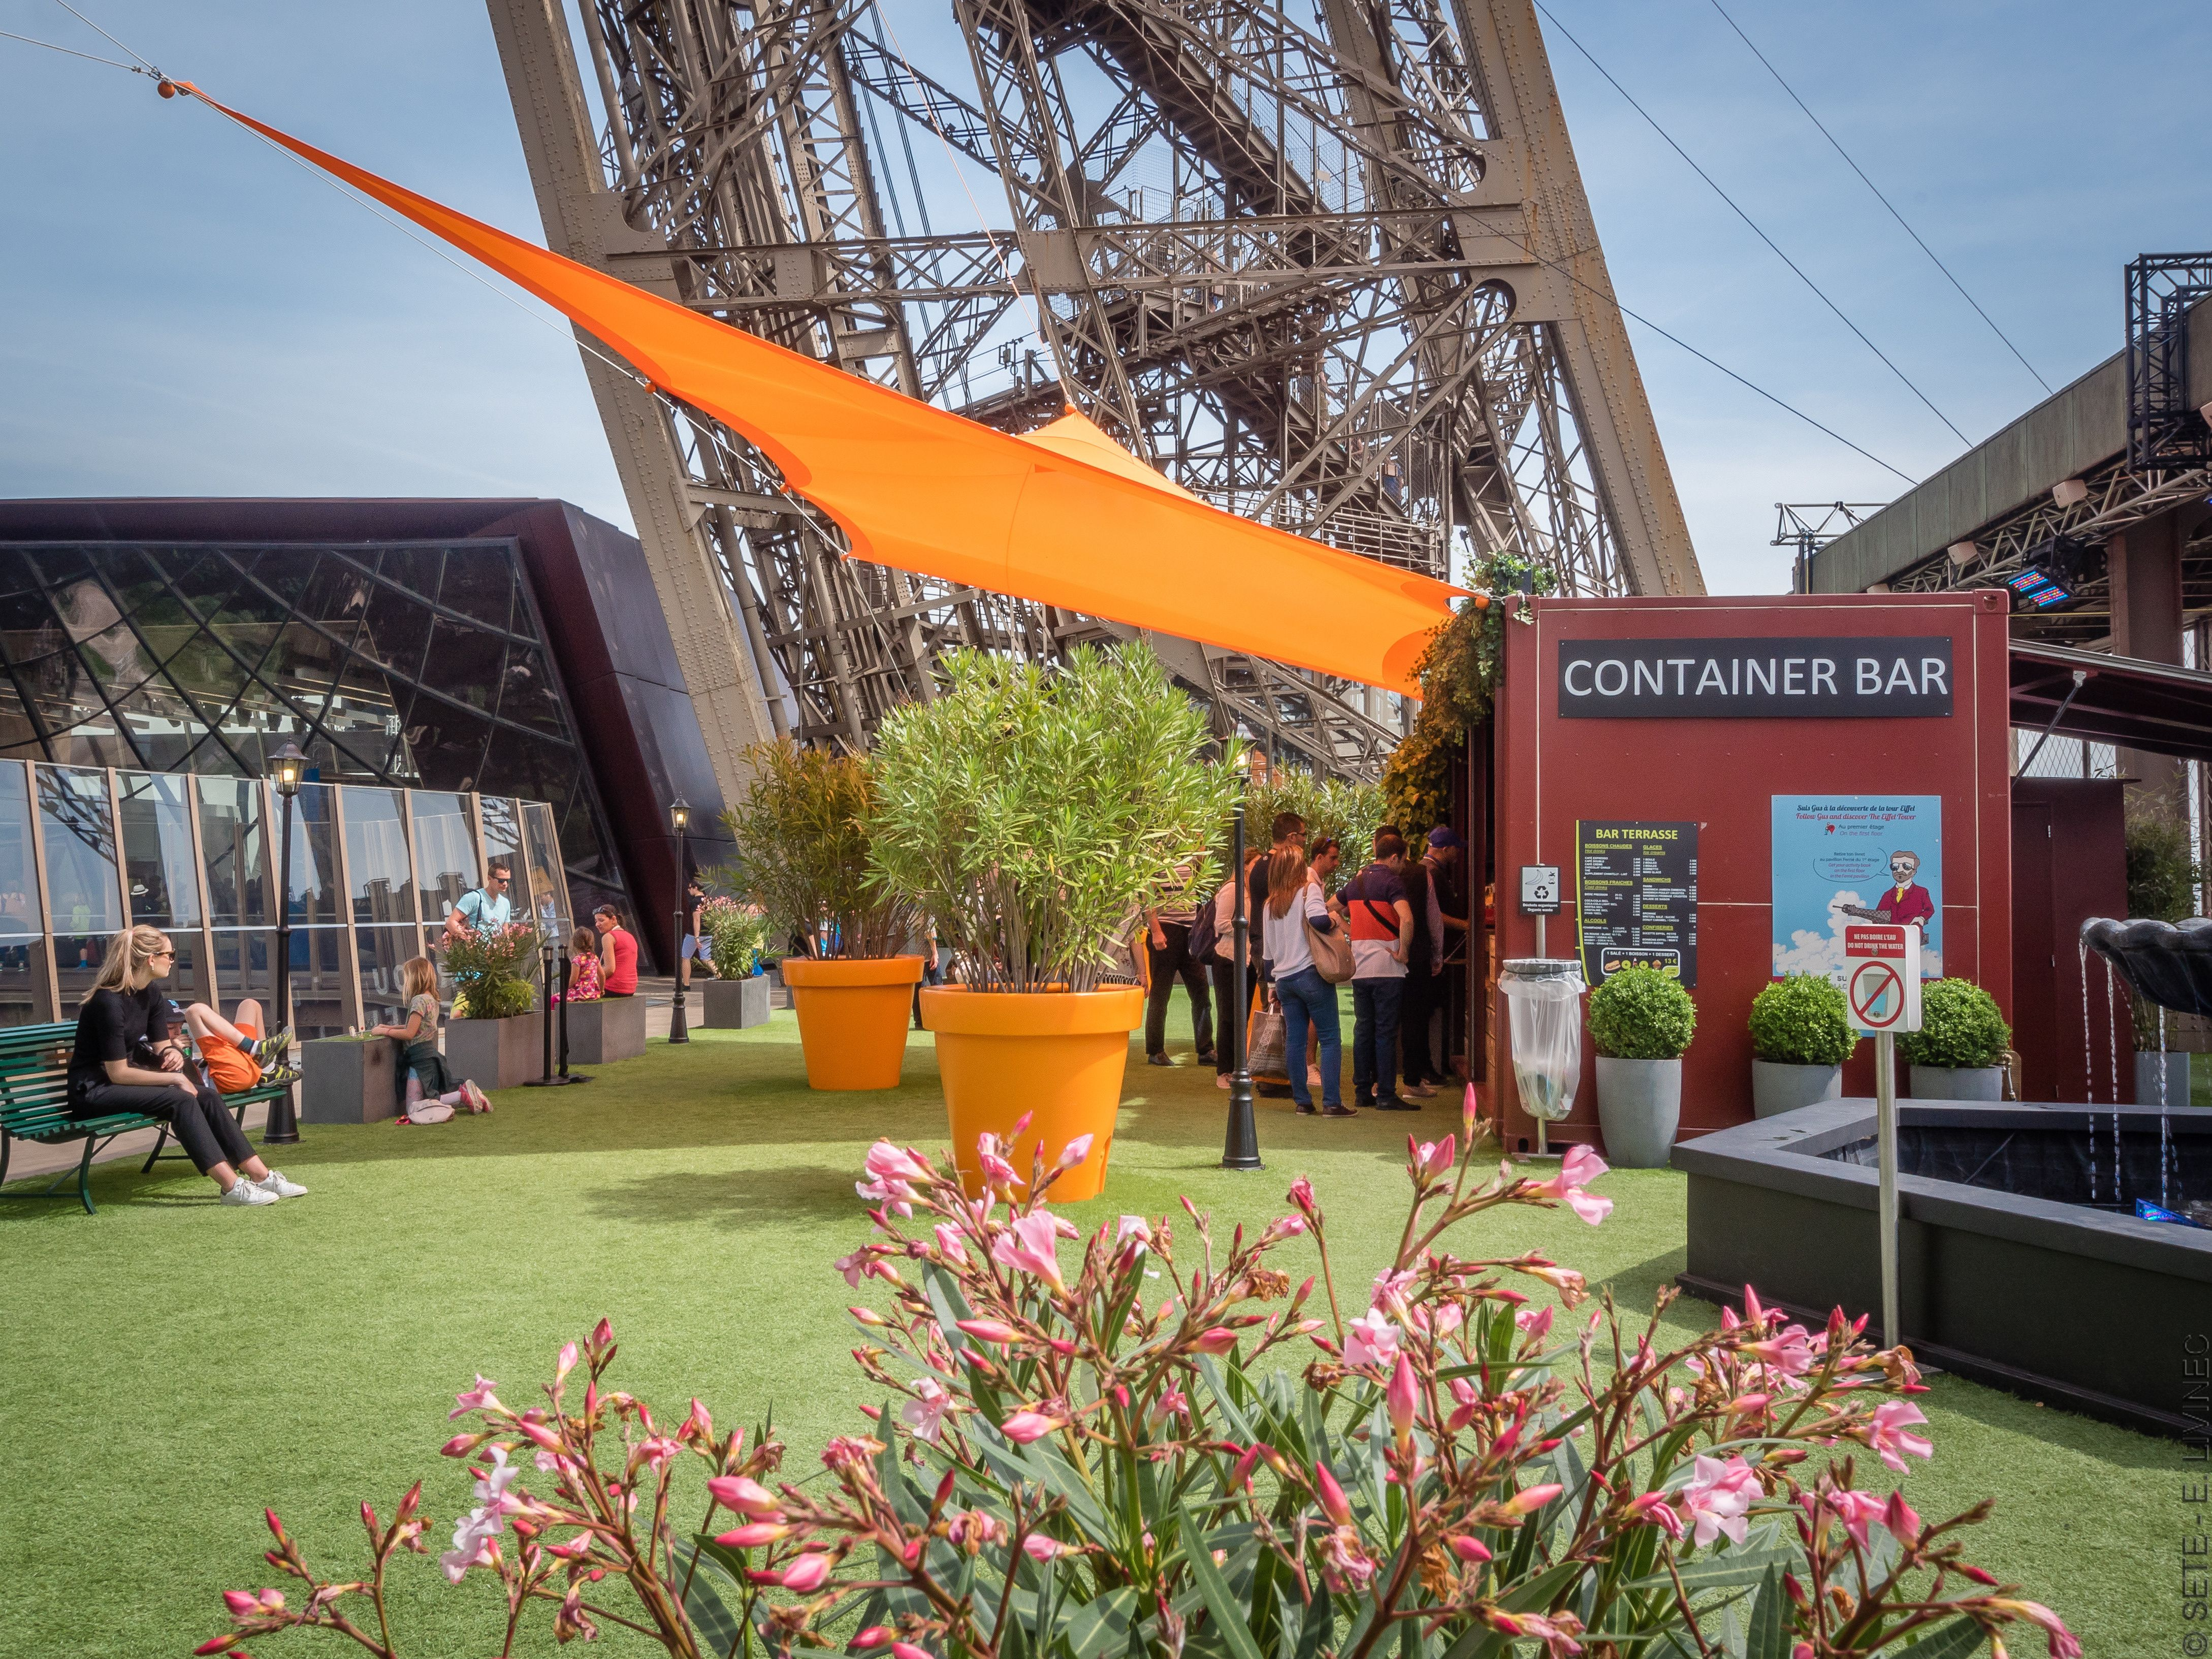 Rooftop garden at the Eiffel Tower